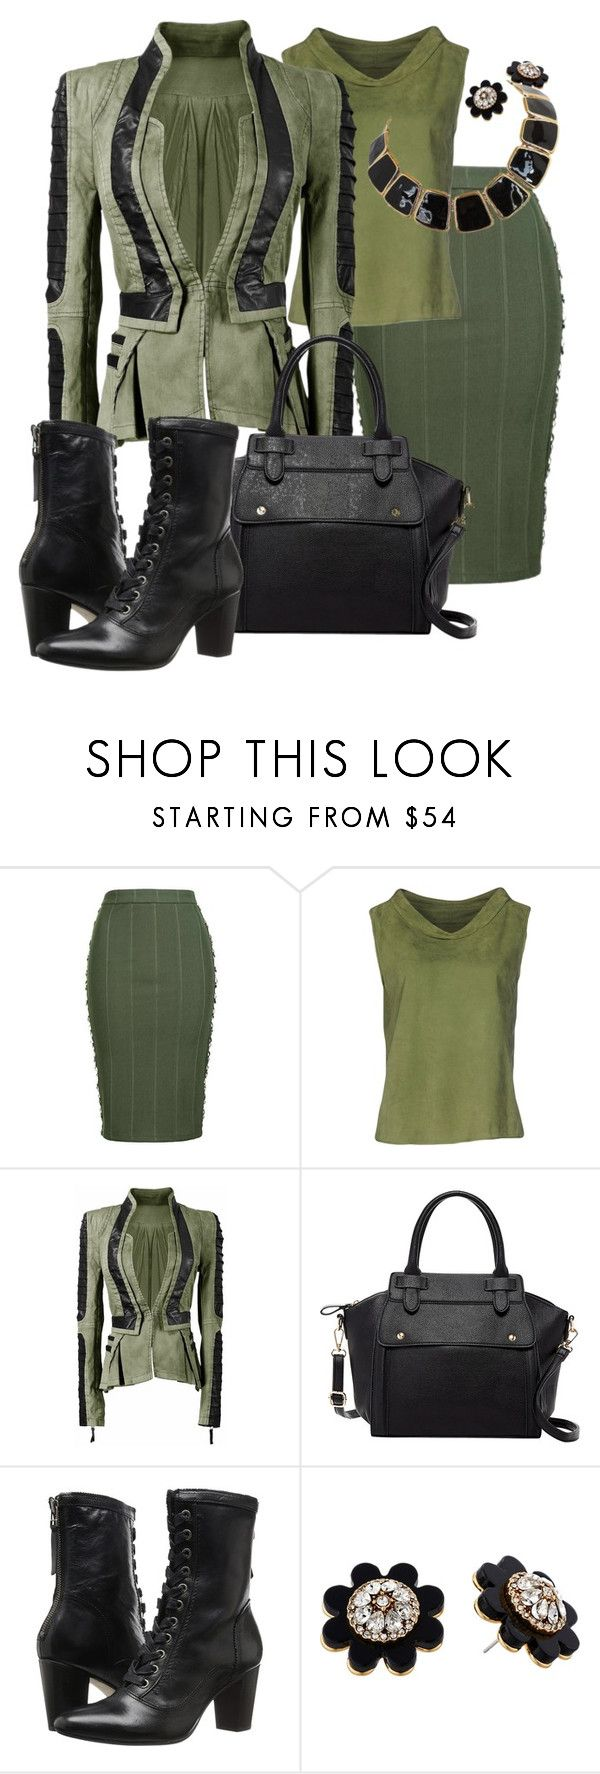 """Moss Green & Black"" by geewhizart ❤ liked on Polyvore featuring Topshop, DESA, Pink Haley, Johnston & Murphy and Kate Spade"